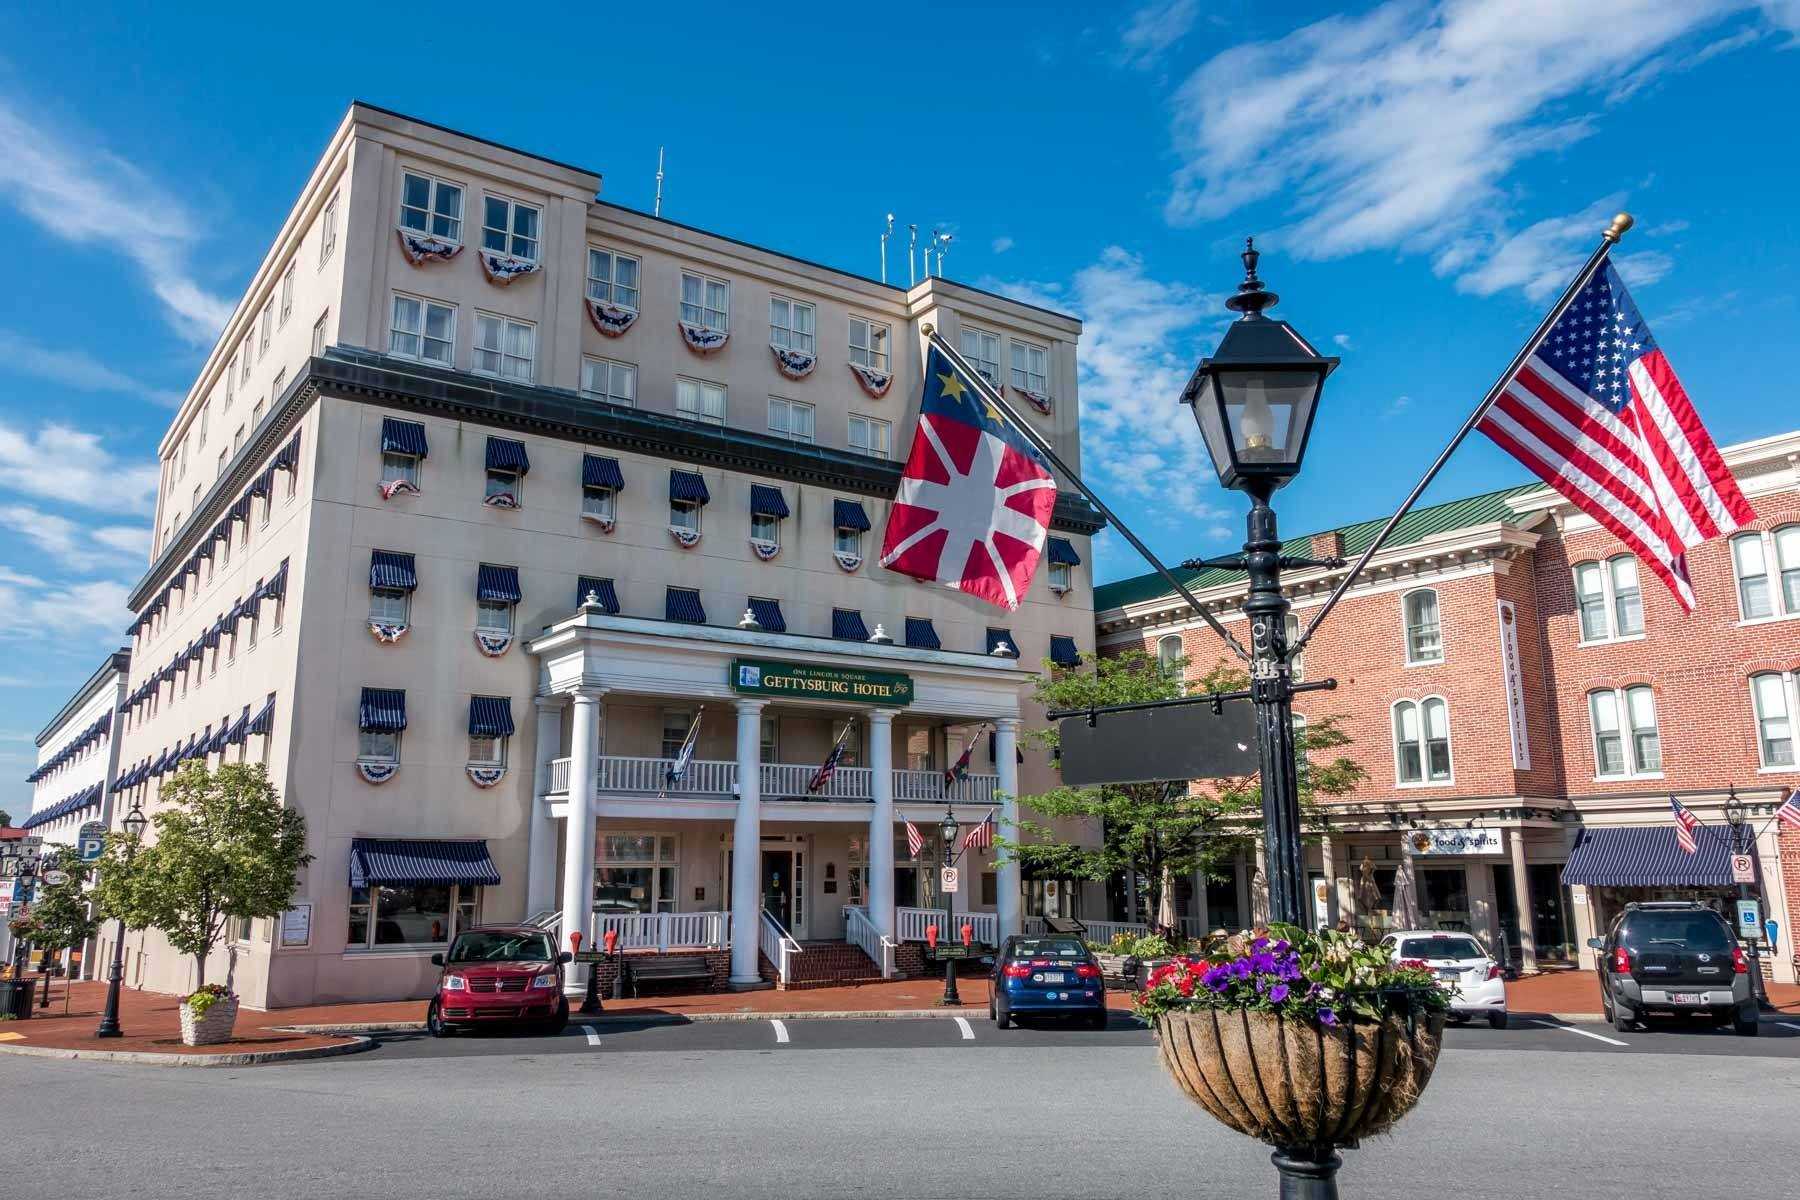 Flags flying in front of a 6-story building with rows of windows and a sign: Gettysburg Hotel